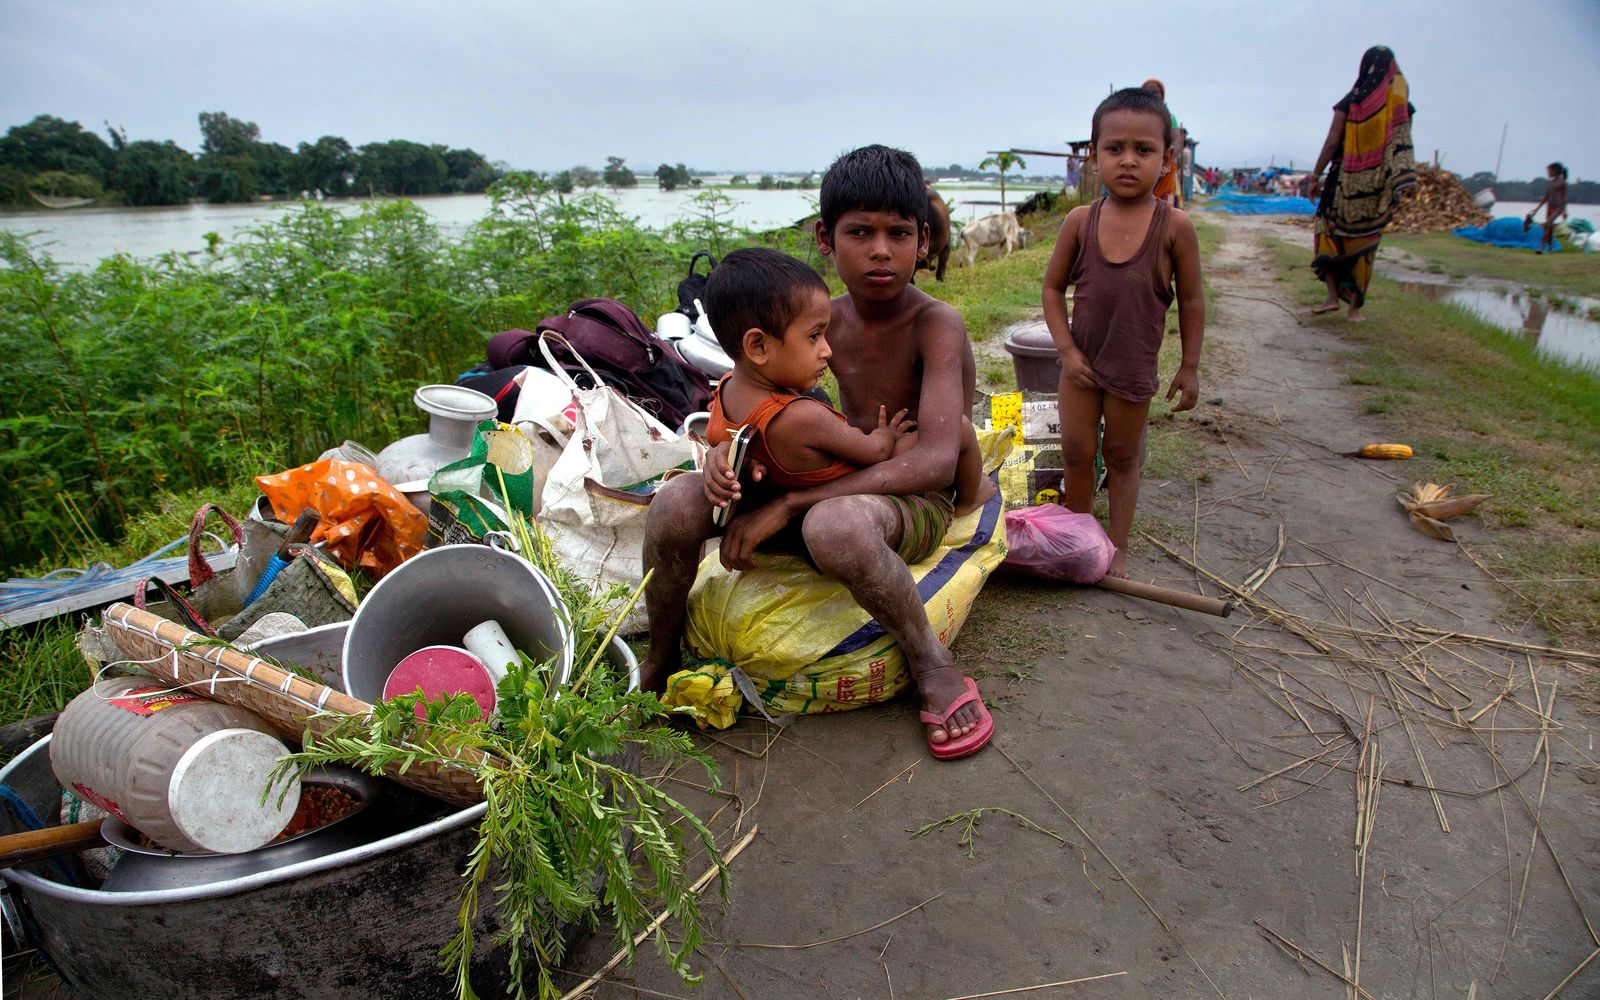 Flood affected children sit near their belongings on an embankment in Pabhokathi village east of Gauhati India, Monday, July 15, 2019. (AP Photo/Anupam Nath)